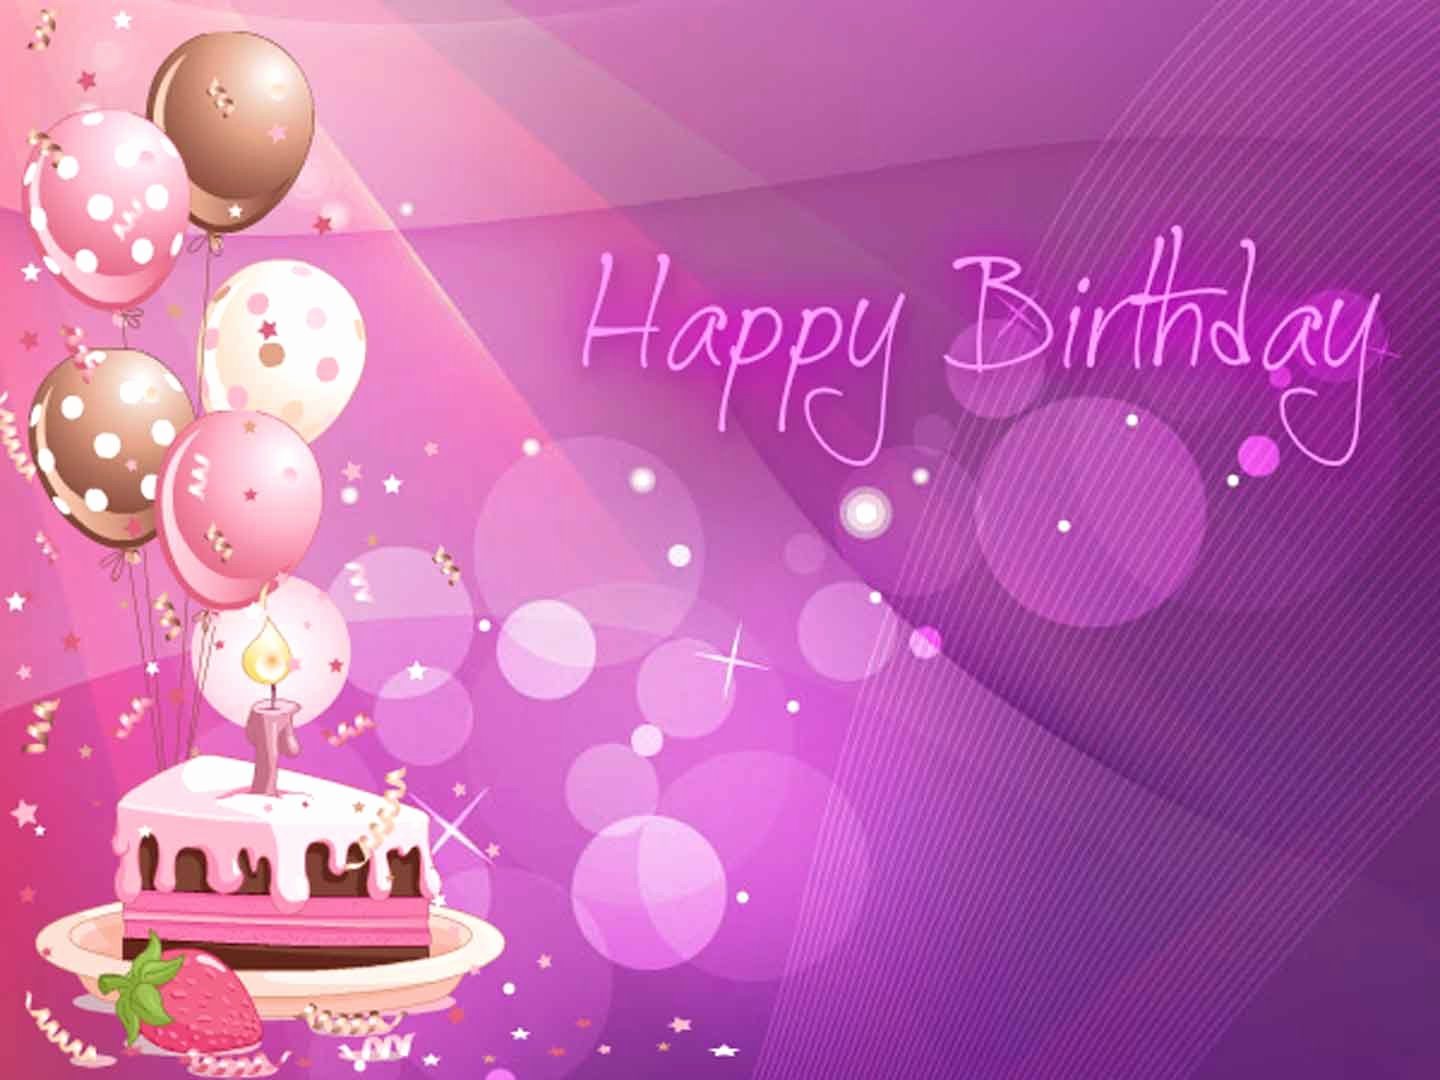 Happy Bday Wallpapers Free New Happy Birthday Wallpapers Image Wallpaper Cave